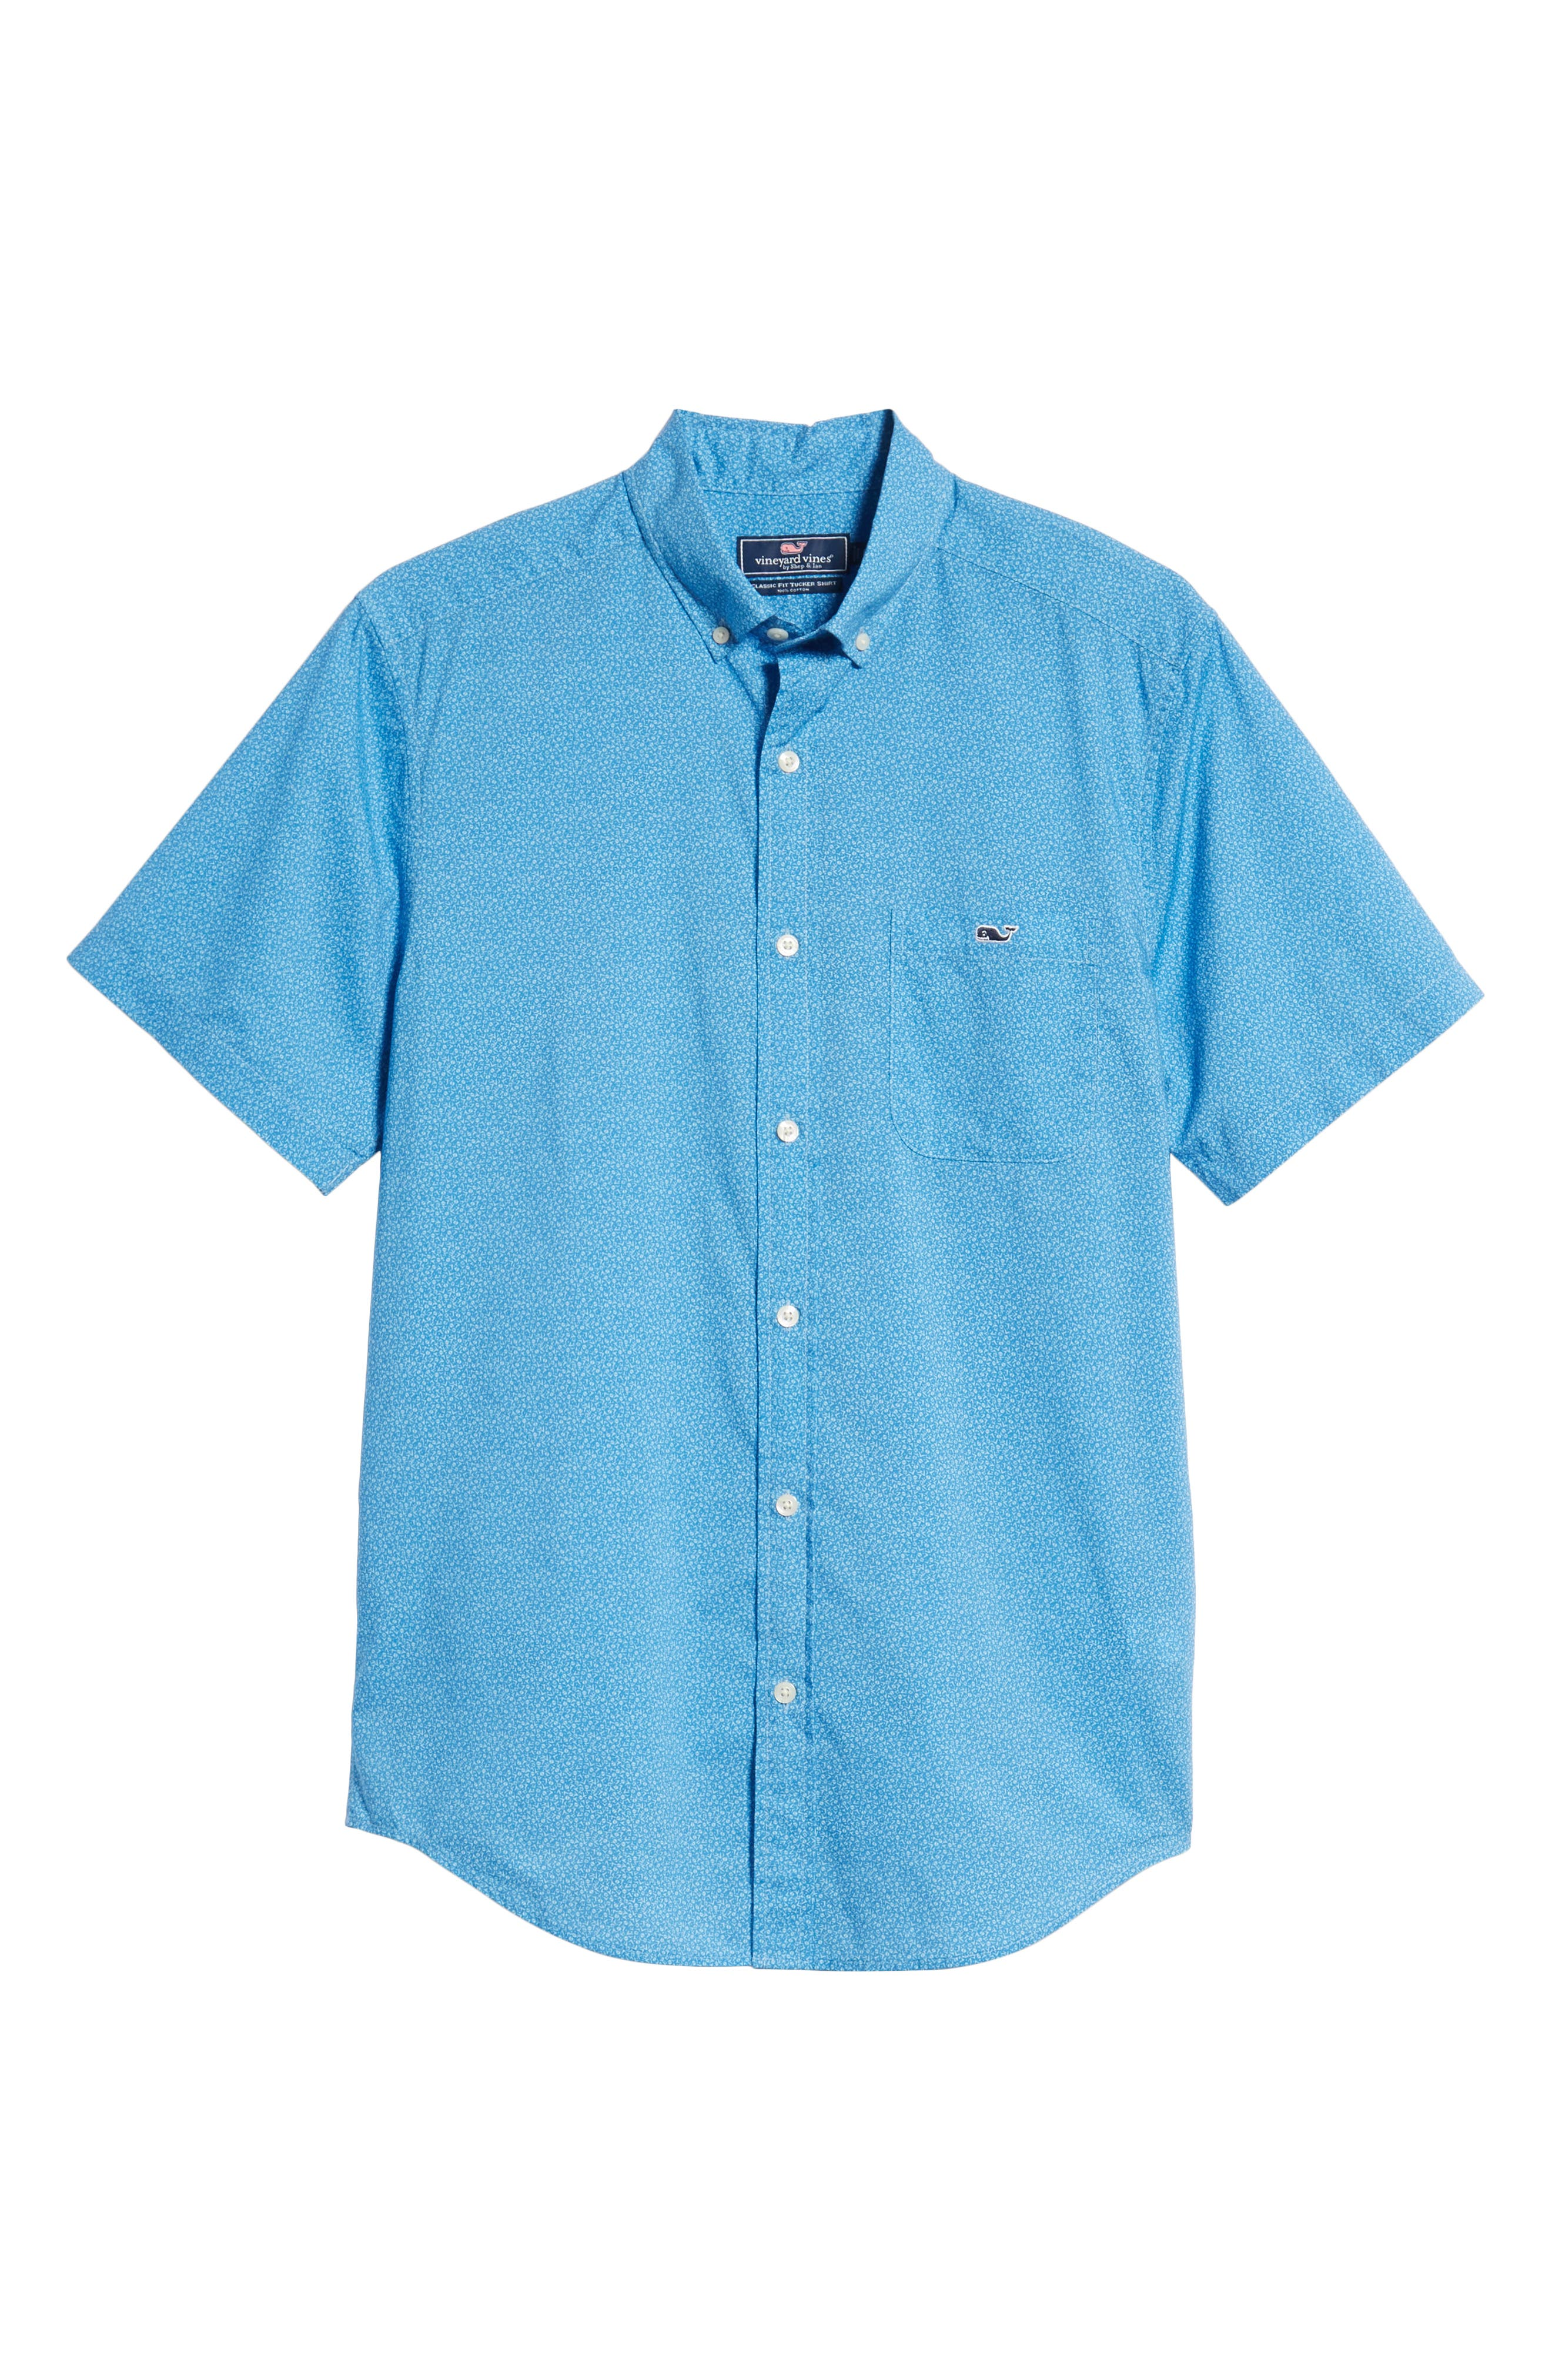 Seagulls Tucker Slim Fit Sport Shirt,                             Alternate thumbnail 6, color,                             400